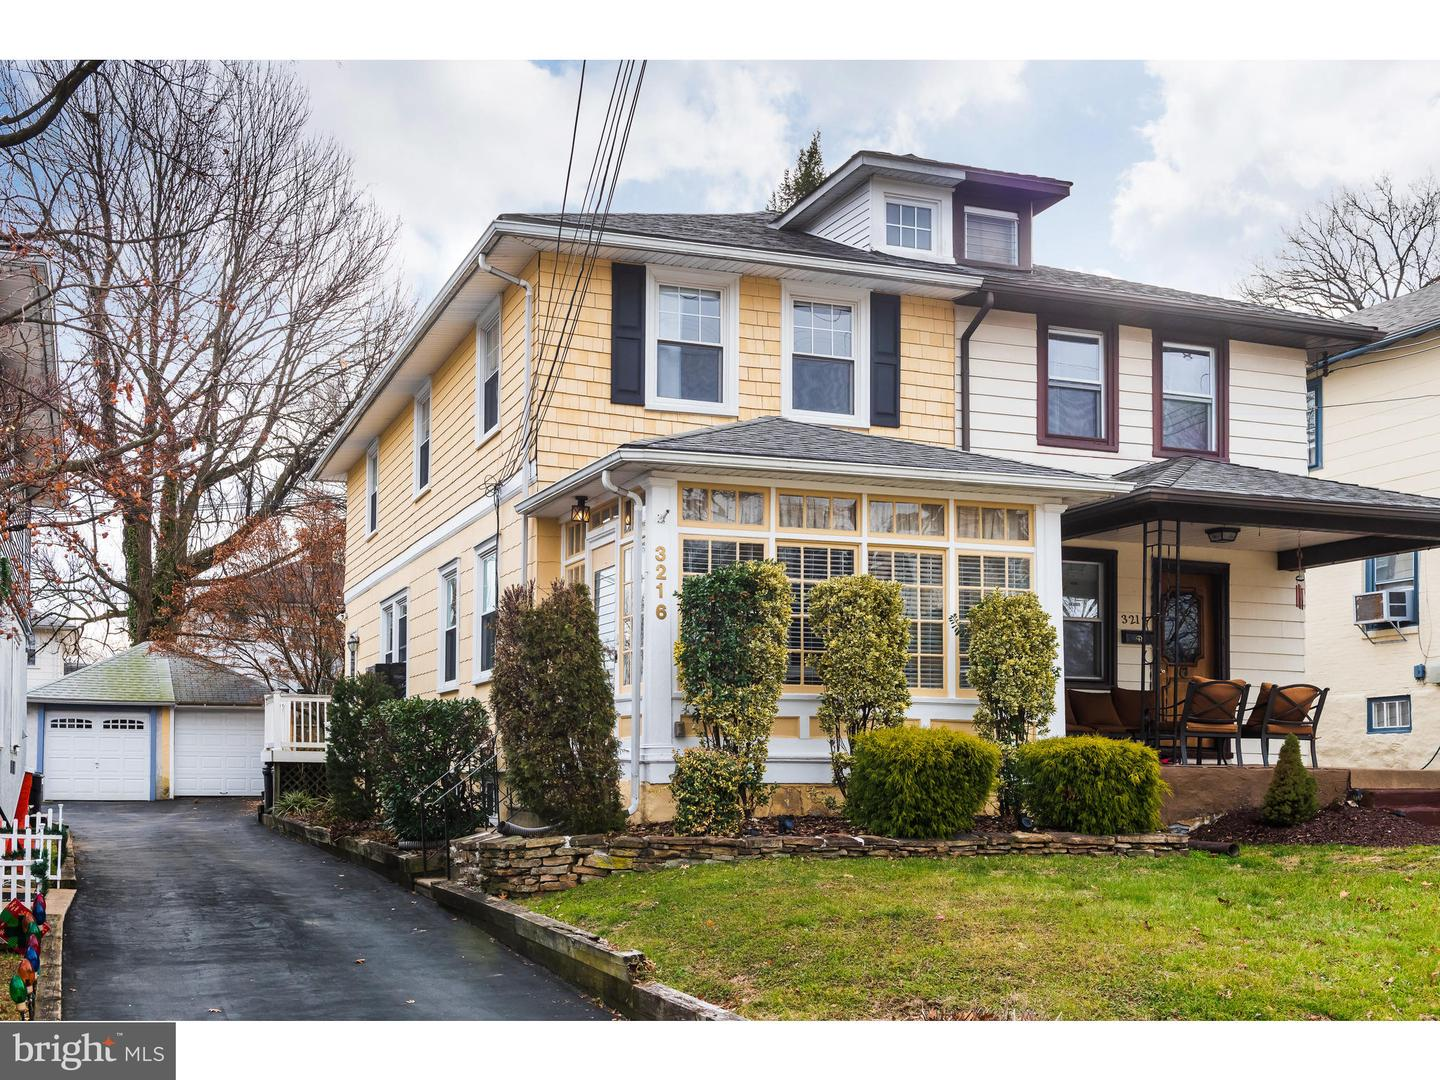 3216 Marshall Road Drexel Hill, PA 19026